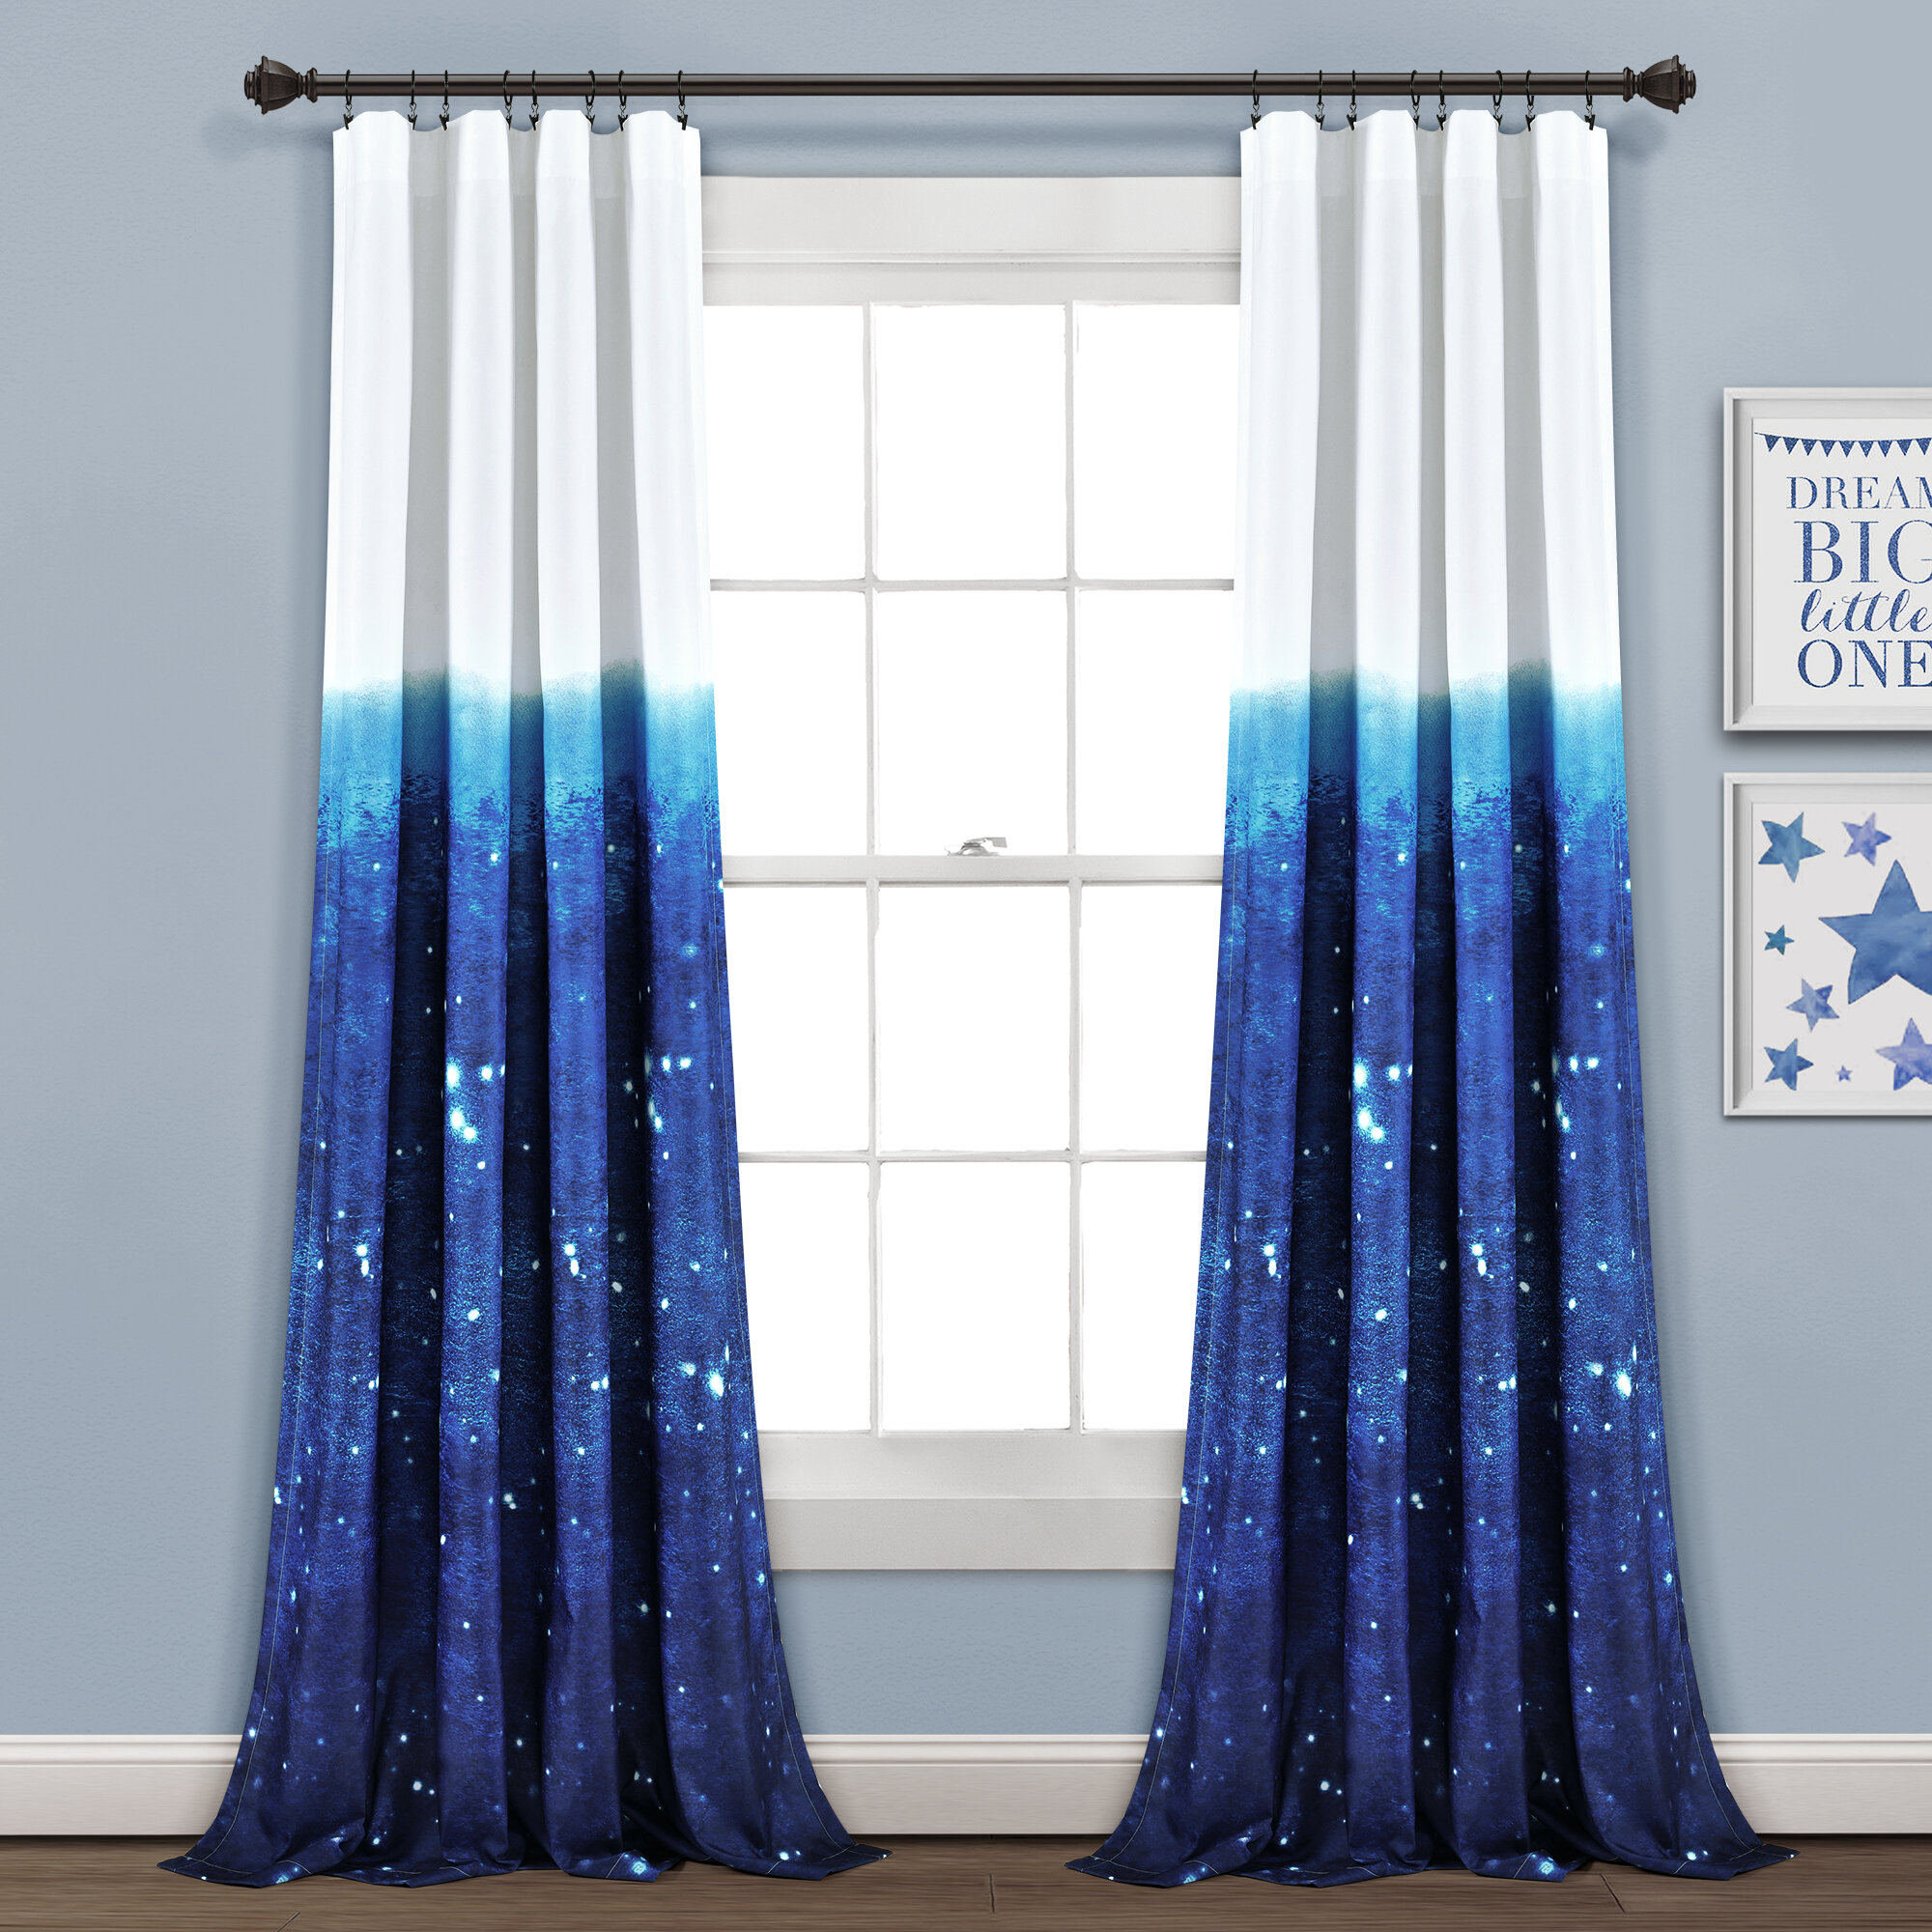 Space Window Curtains kids Drapery childrens Curtain Panels star constellations